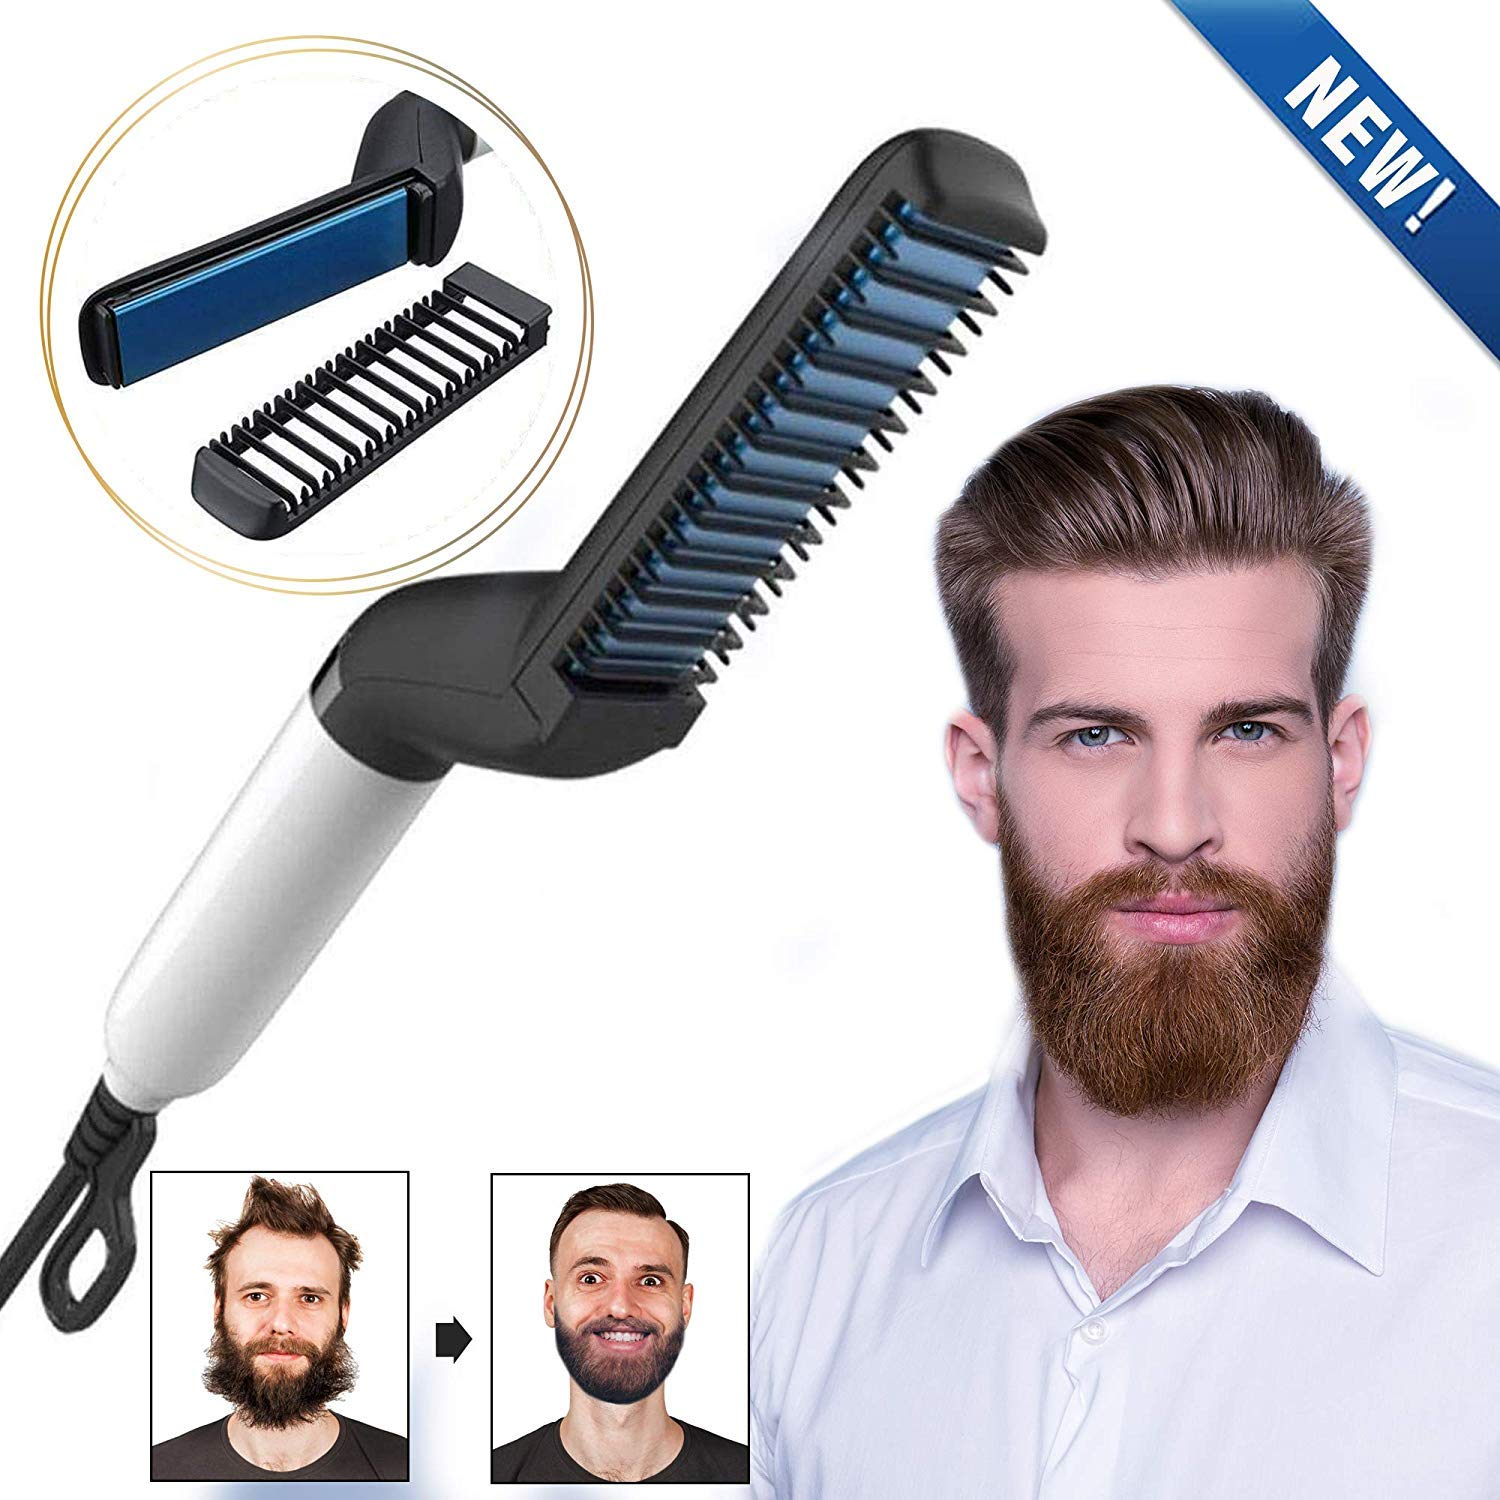 WORD GXElectric Beard Straightener for Men - Professional Quick Styling Comb for Frizz-Free Beard Hair - Ceramic Ionic Heating Control - Portable Brush with Anti-Scald Feature